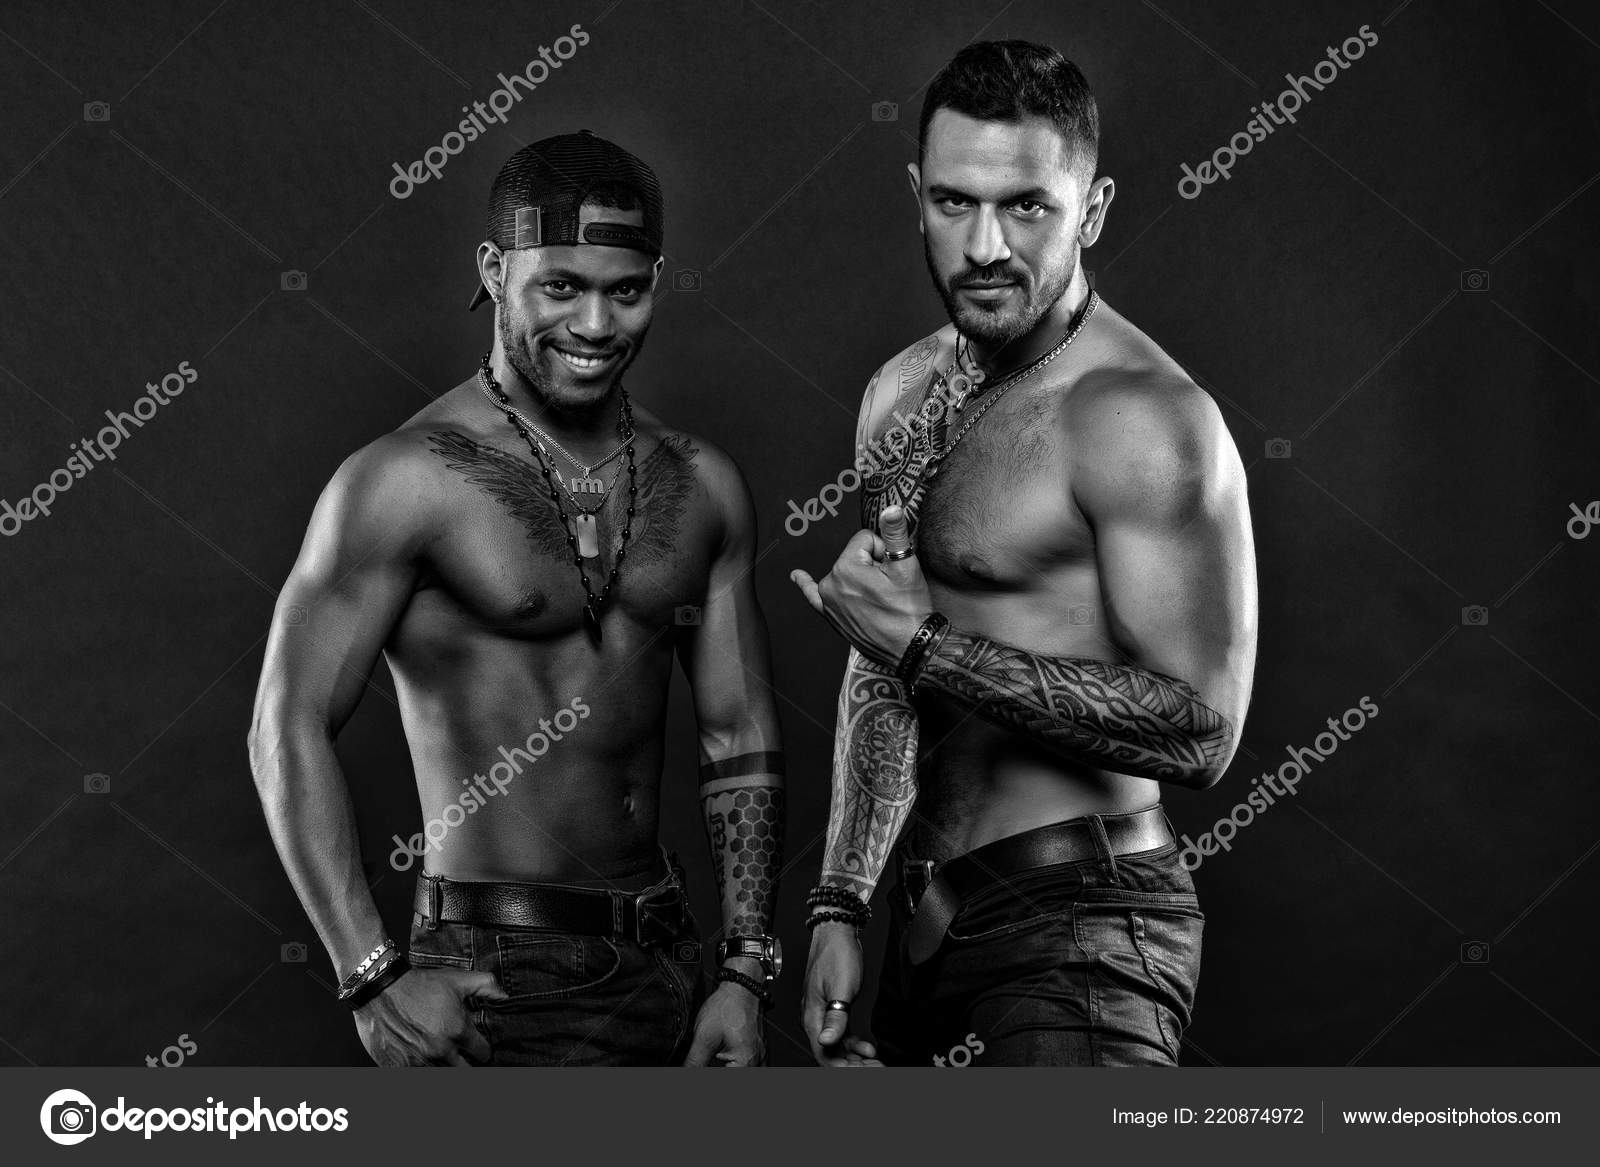 Mens Torso Tattoos Nice Tattoo Men Muscular Men With Fashionable Tattoo Style Sexy Men With Muscular Torso Brutal Macho Style Sexy And Attractive Black And White Stock Photo C Stetsik 220874972